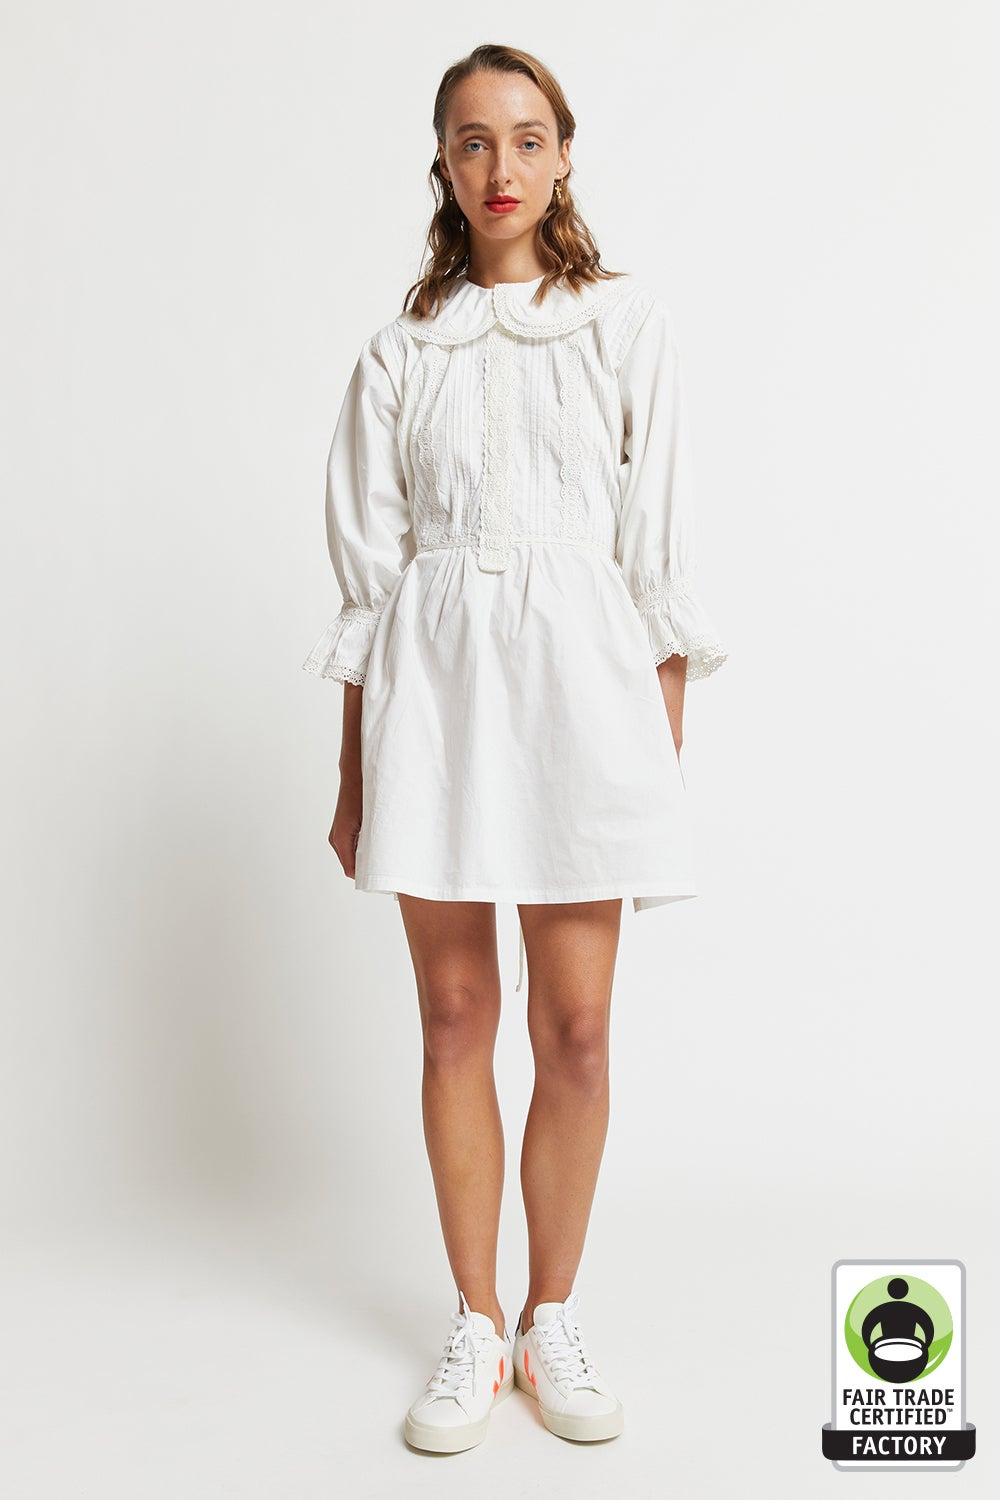 Organic Cotton Peter Dress